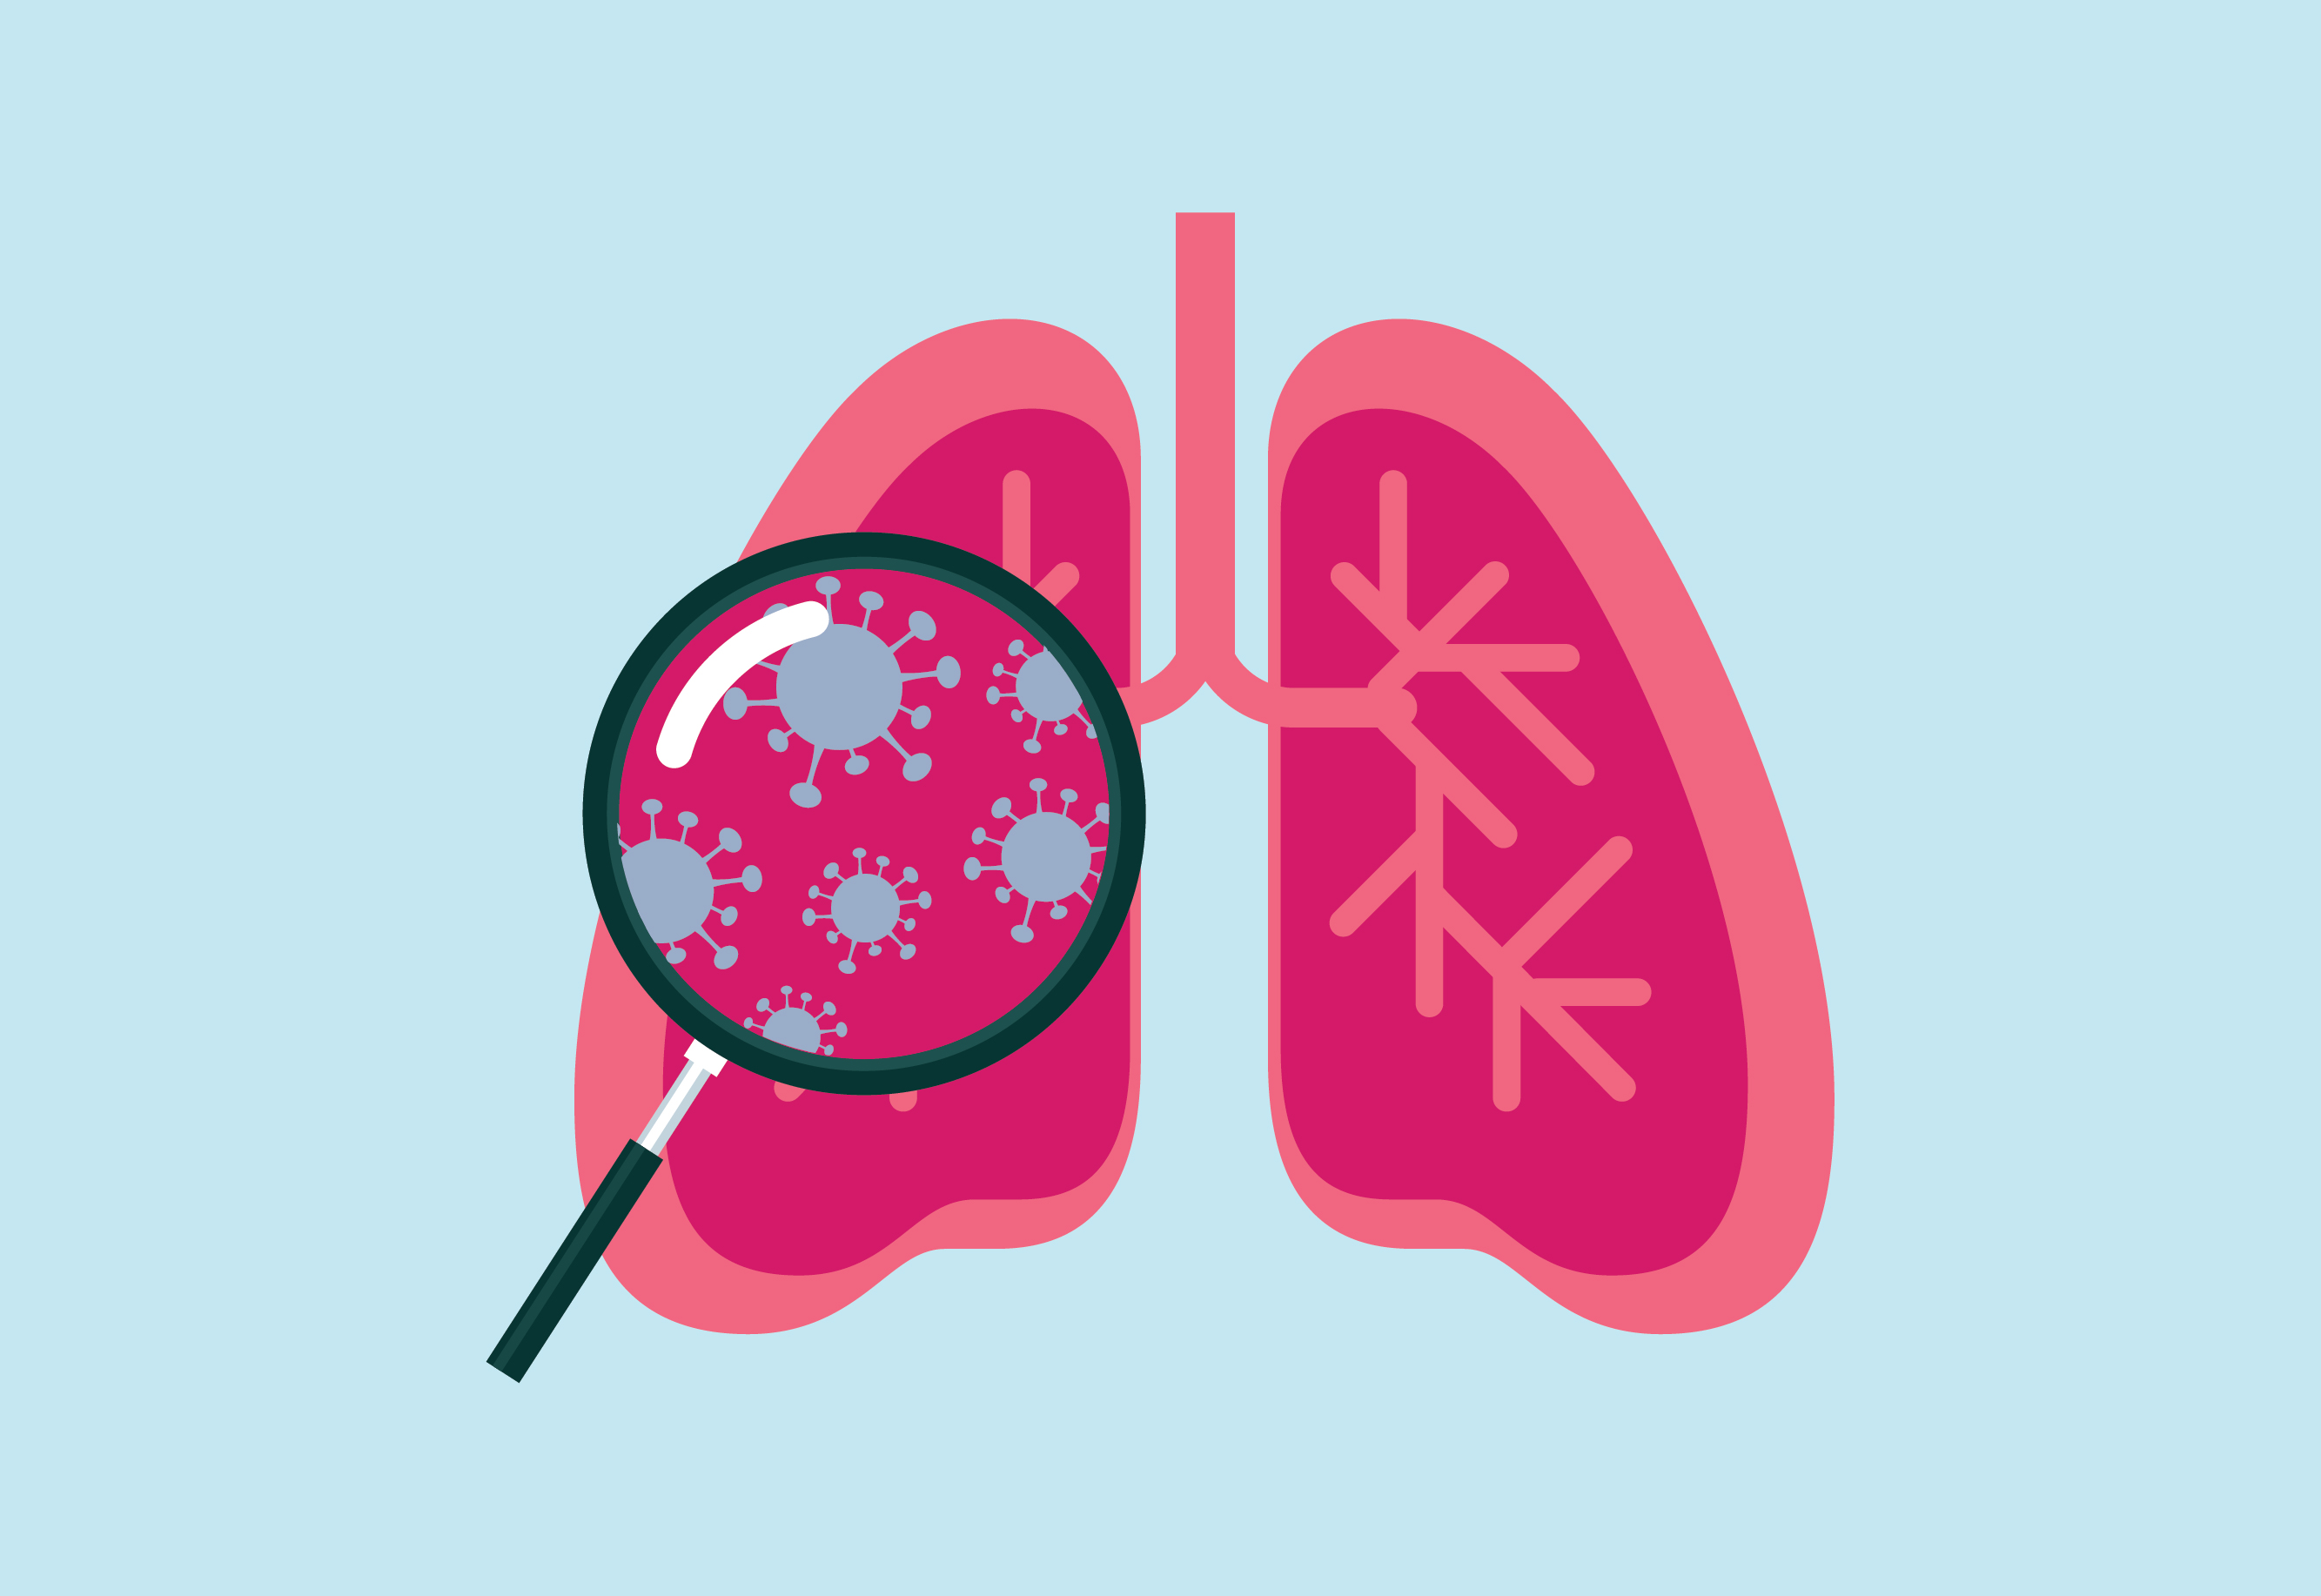 Icon of magnifying glass showing an enlarged view of a lung